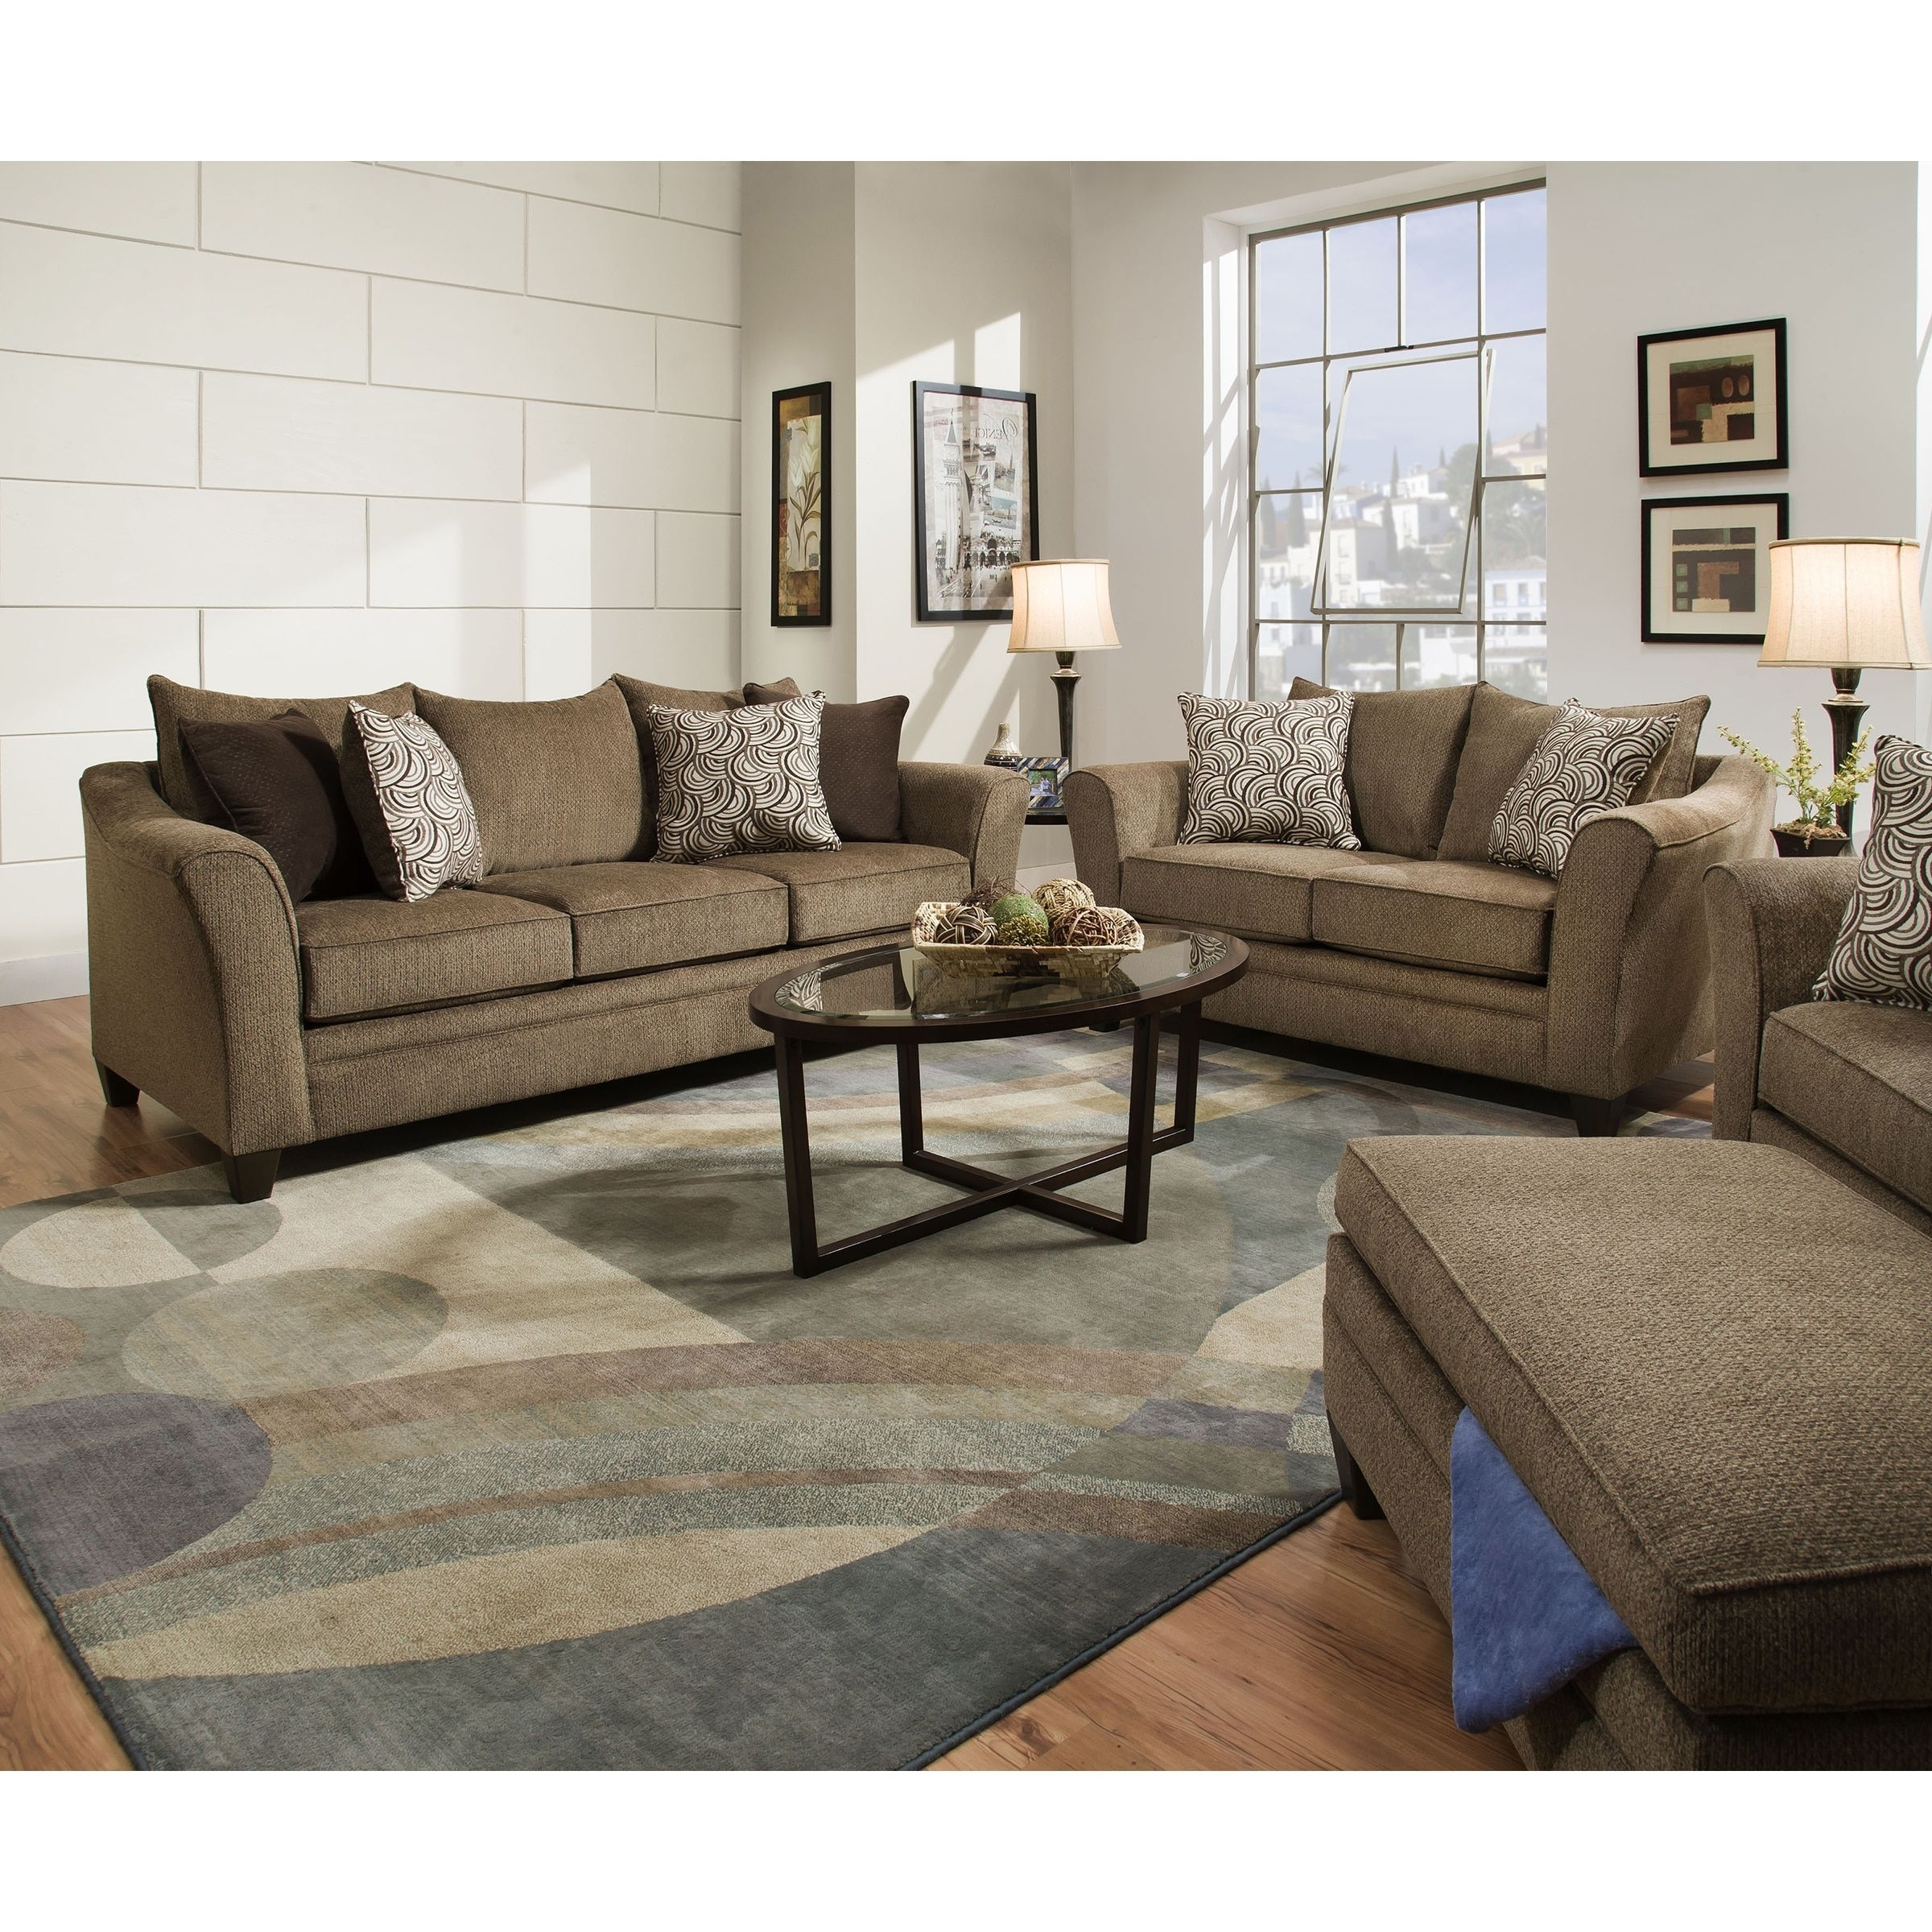 "Alvarez Natural Wool-Blend 12""x18"" Rug Swatch for Adeline 3 Piece Sectionals (Image 6 of 30)"